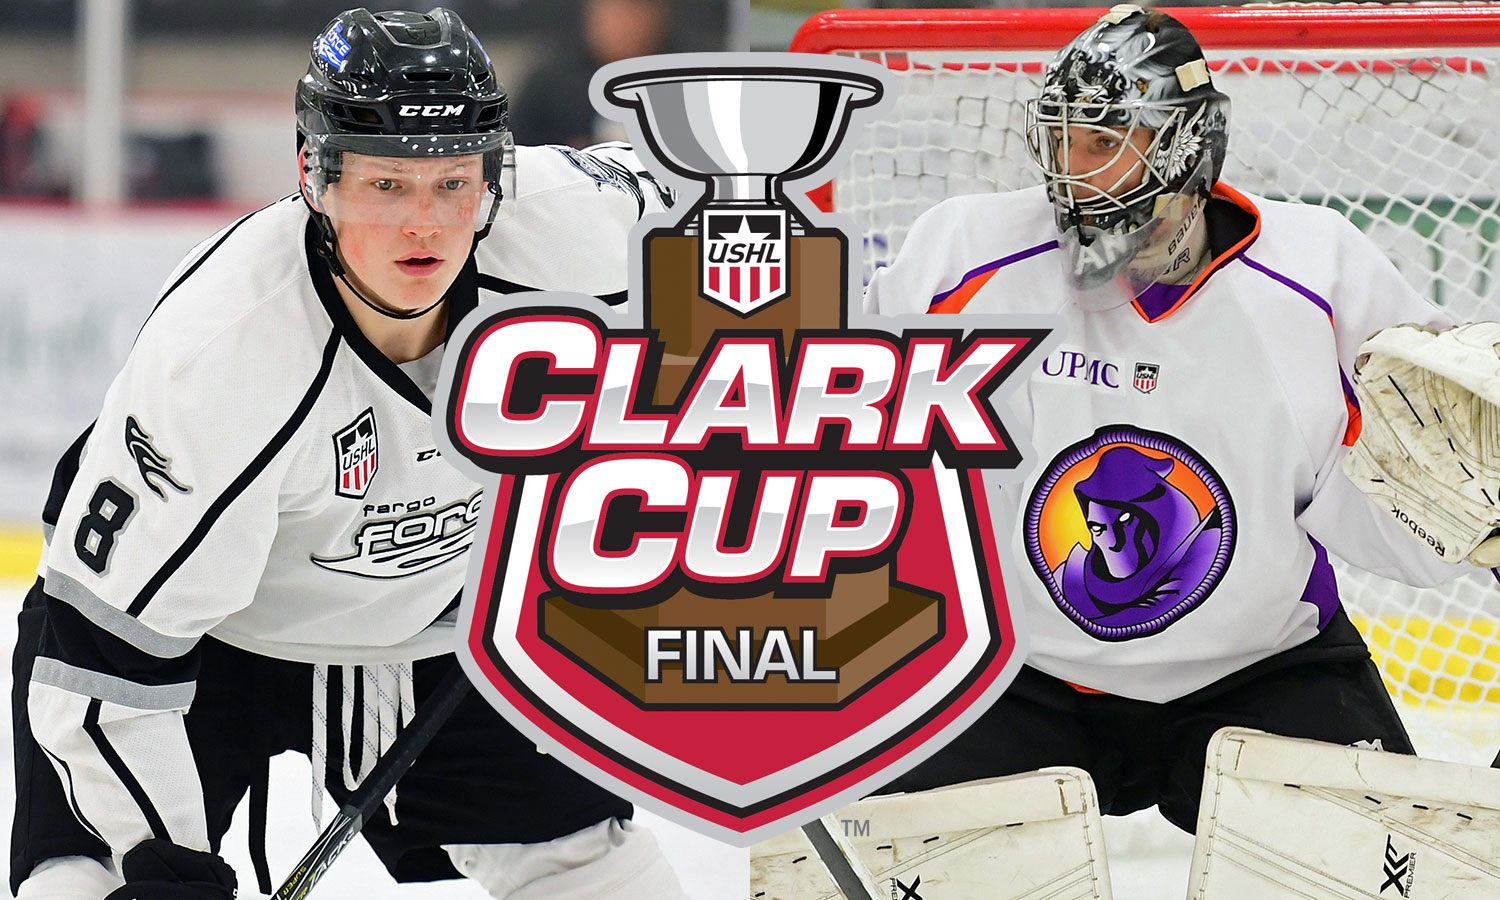 USHL: Clark Cup Final Preview - Fargo Force Vs. Youngstown Phantoms